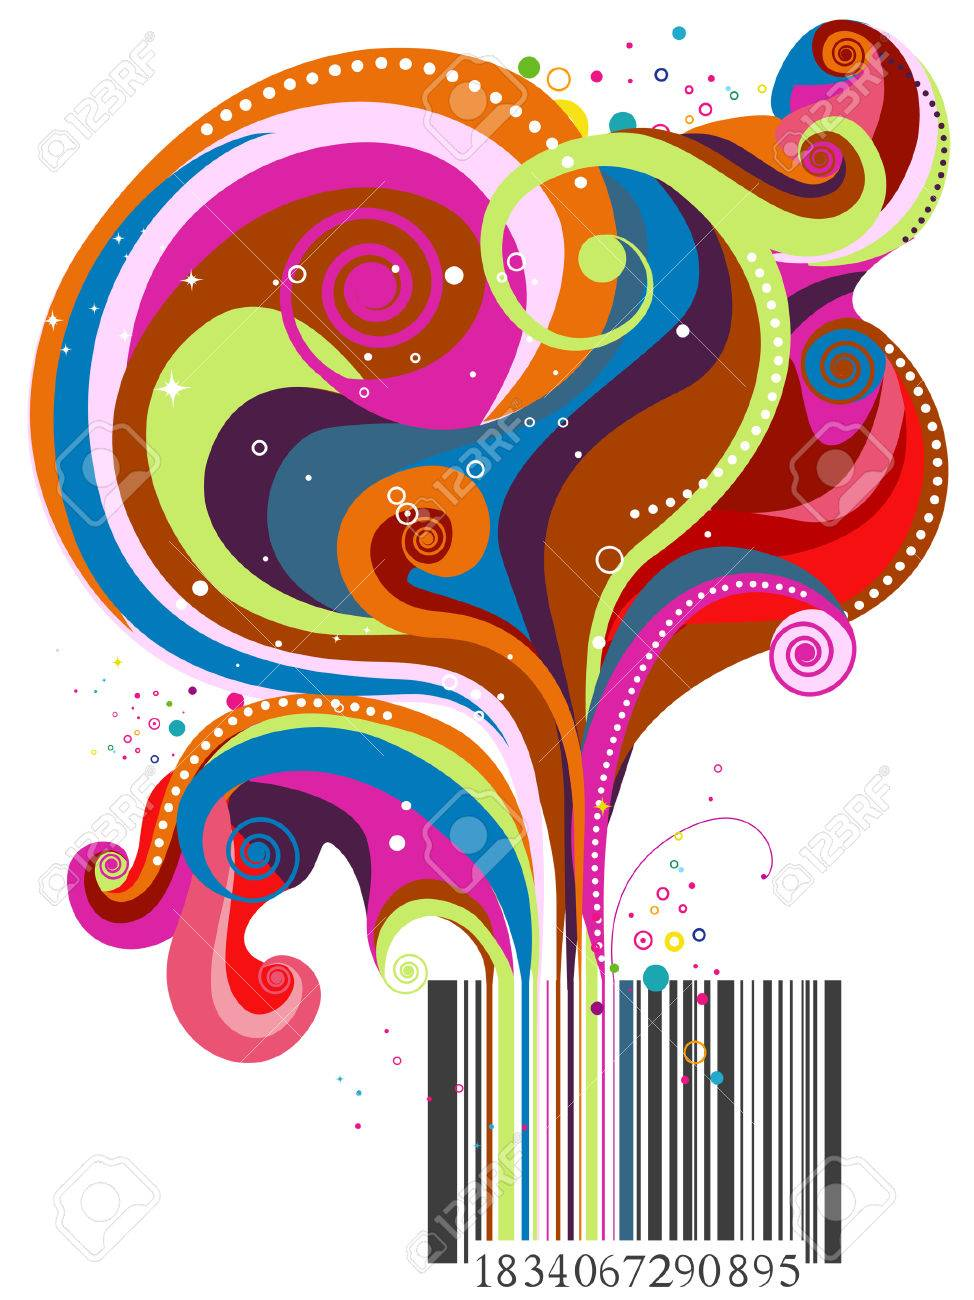 Barcode Wave Design with Clipping Path Stock Vector - 4666663